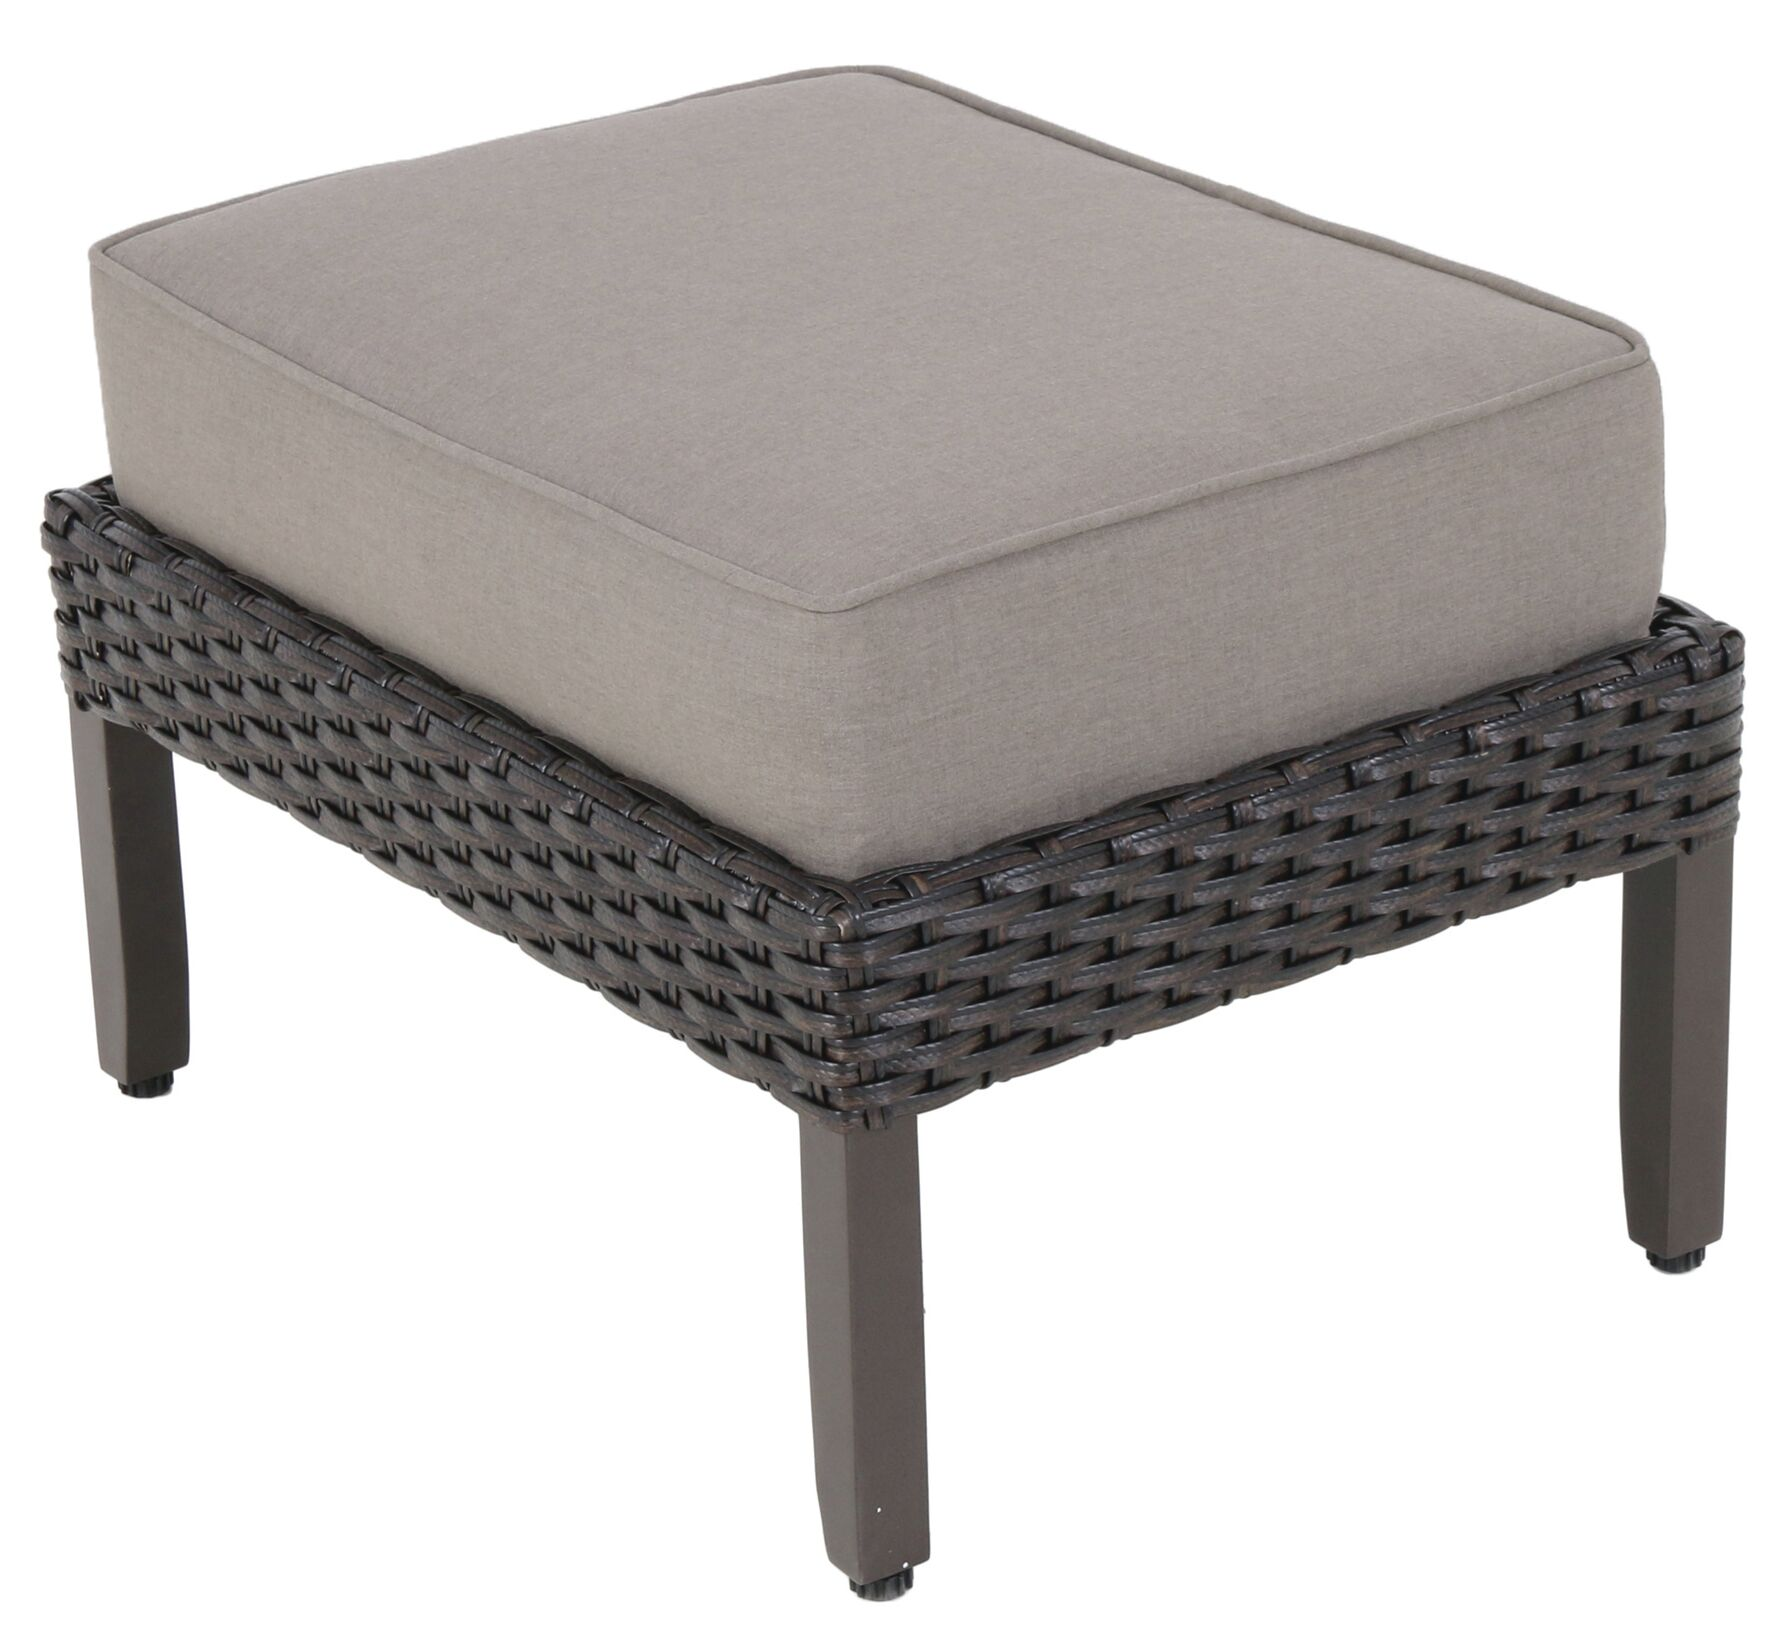 Kanzler Aluminum Outdoor Wicker Ottoman with Cushion (Set of 2) Fabric: Cast Shale